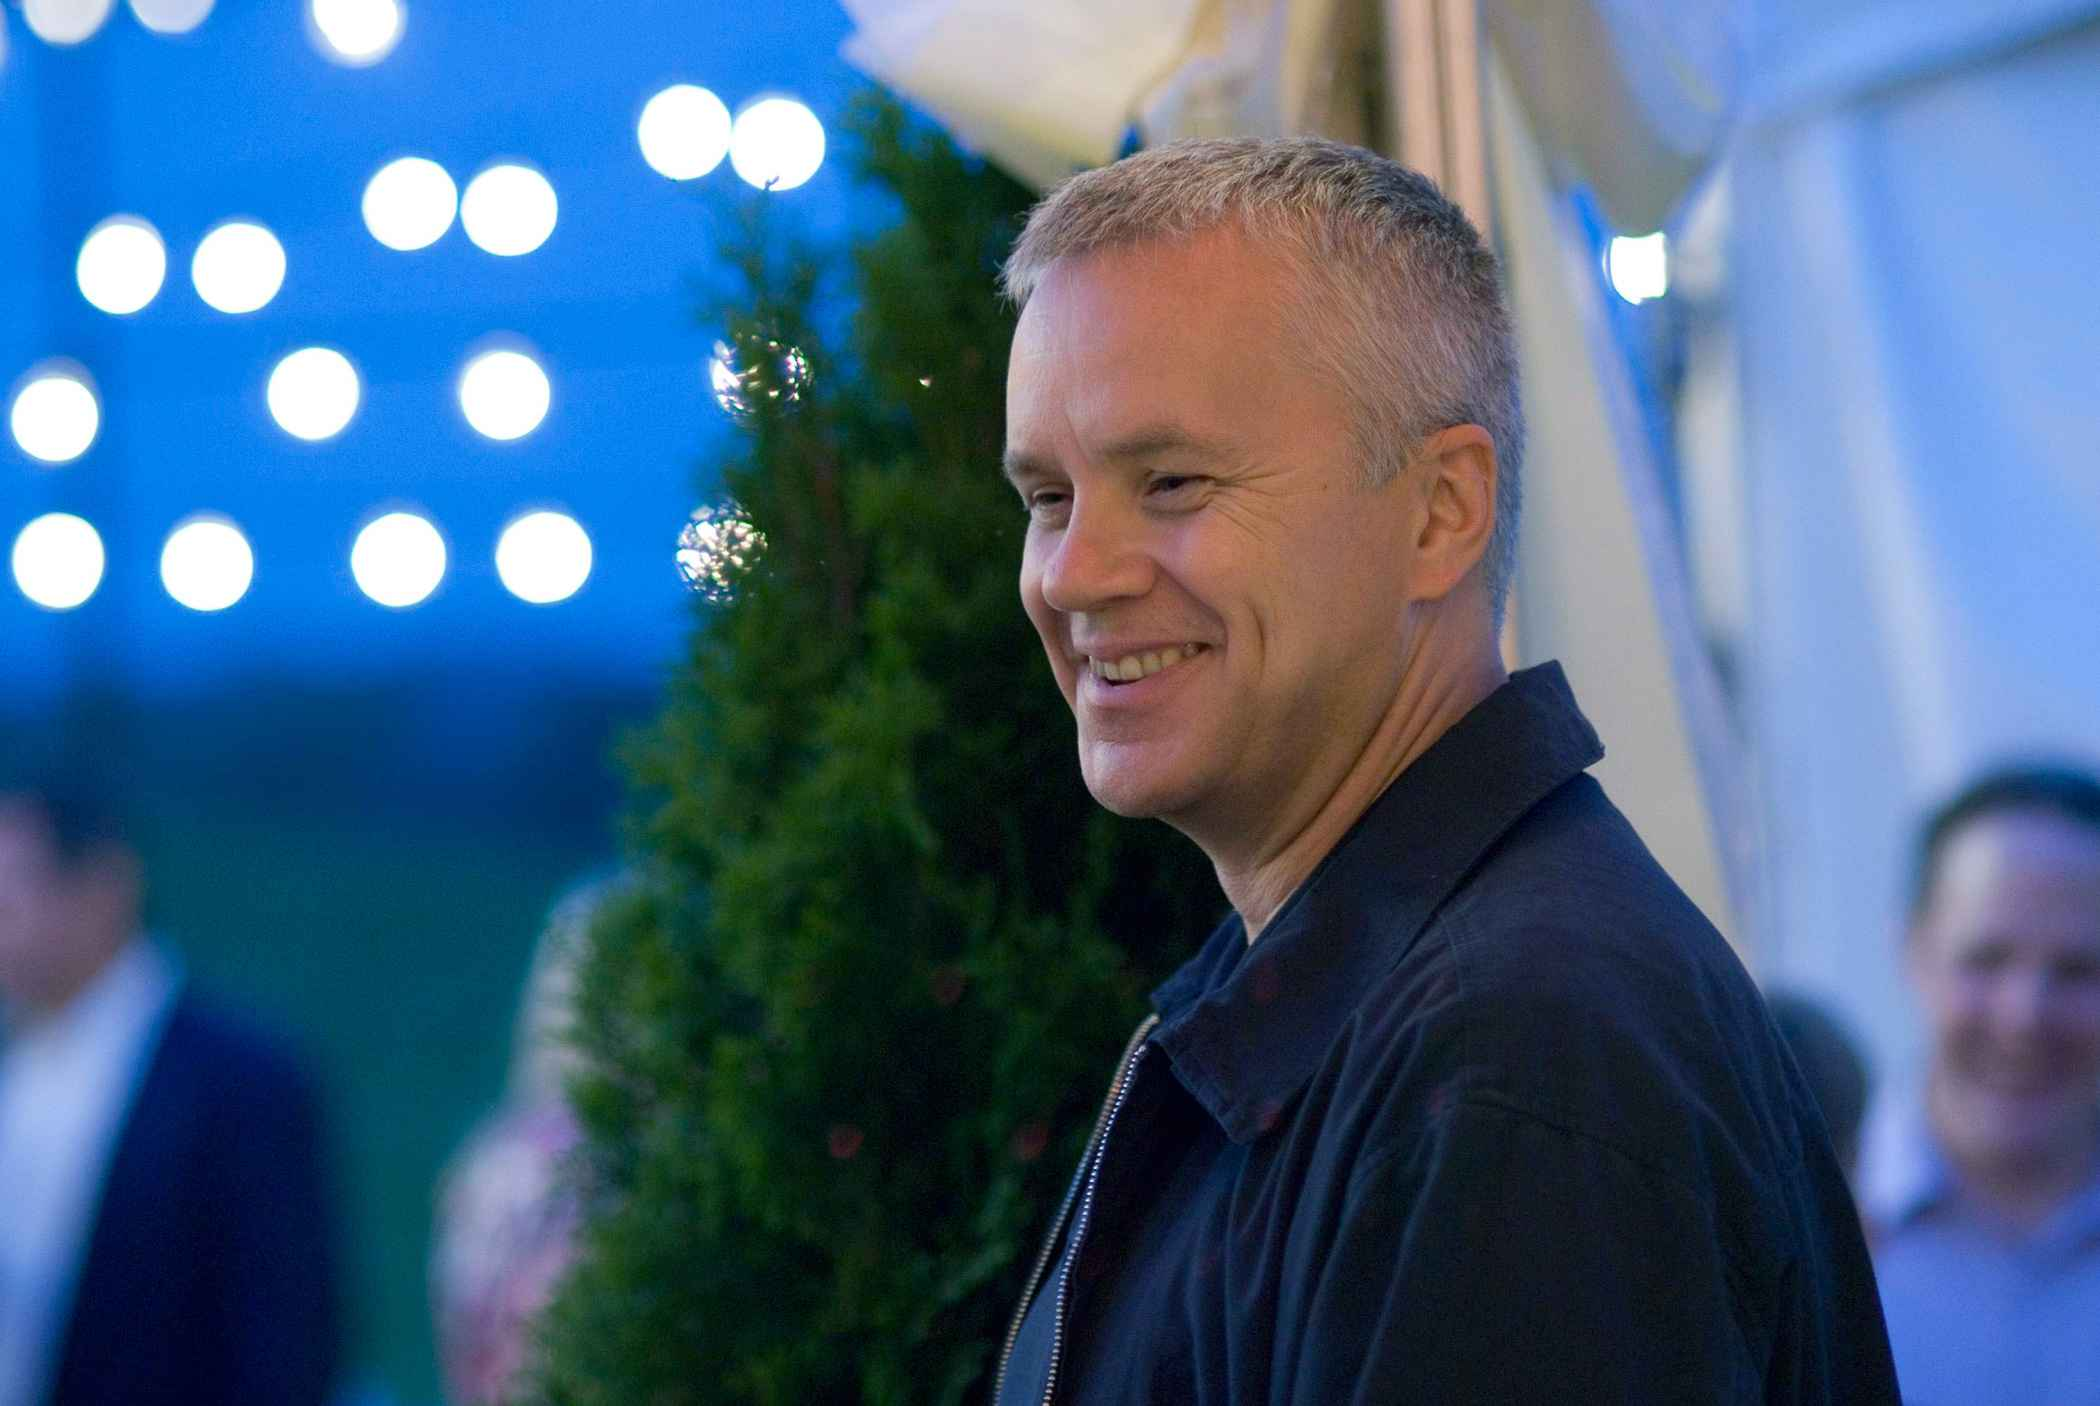 Tim Robbins Joins Thanks For Sharing With Mark Ruffalo